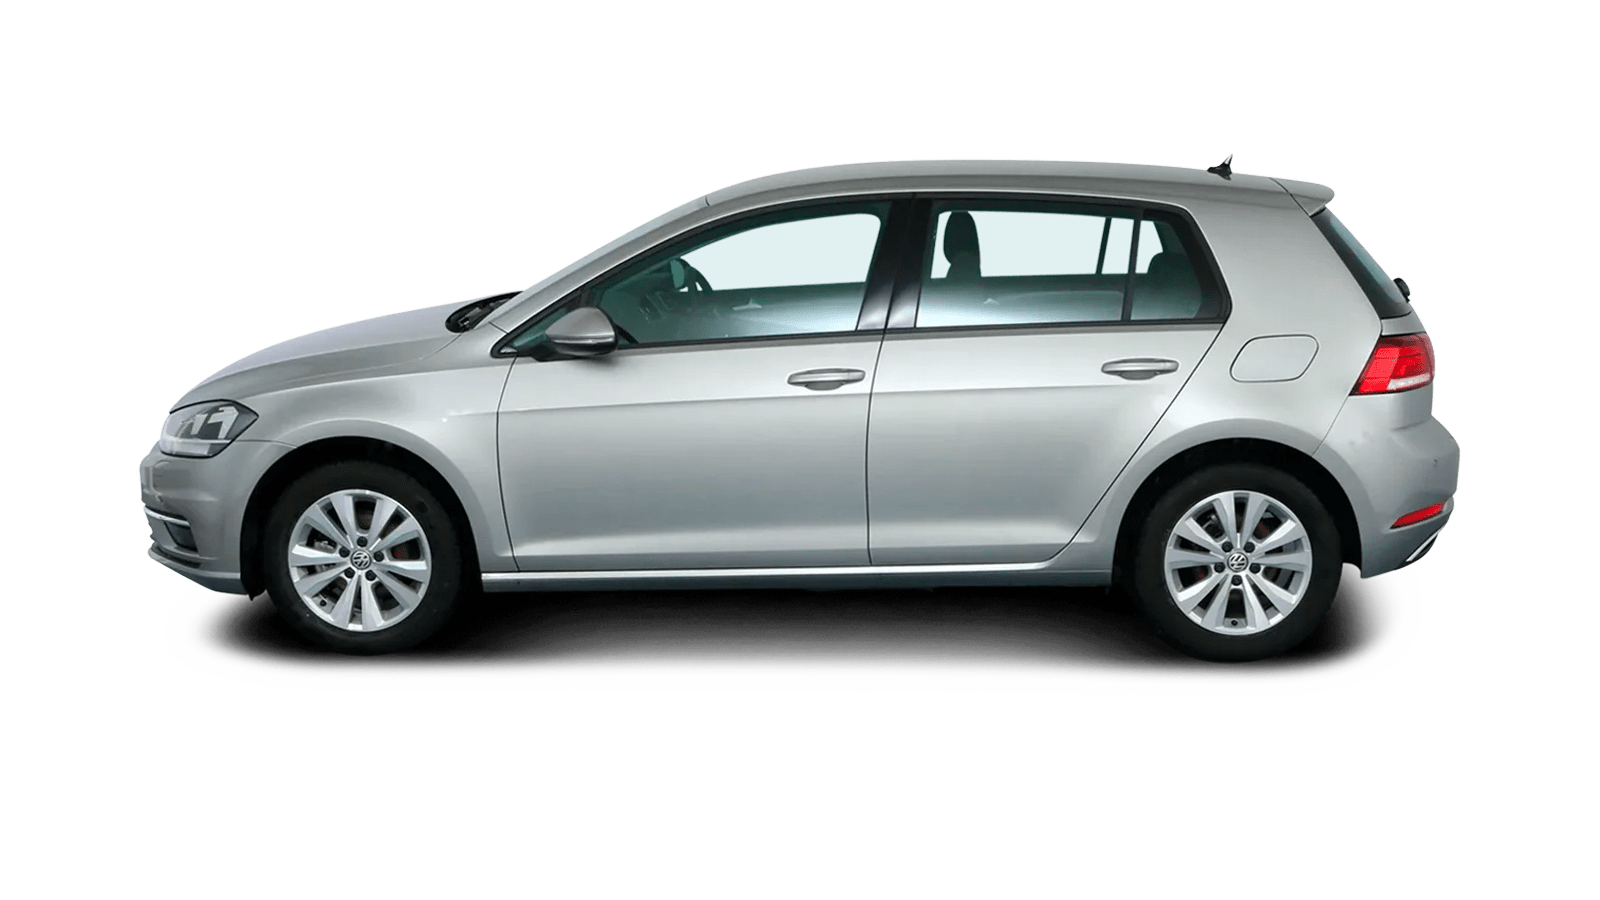 VW Golf Silver back - Clyde car subscription